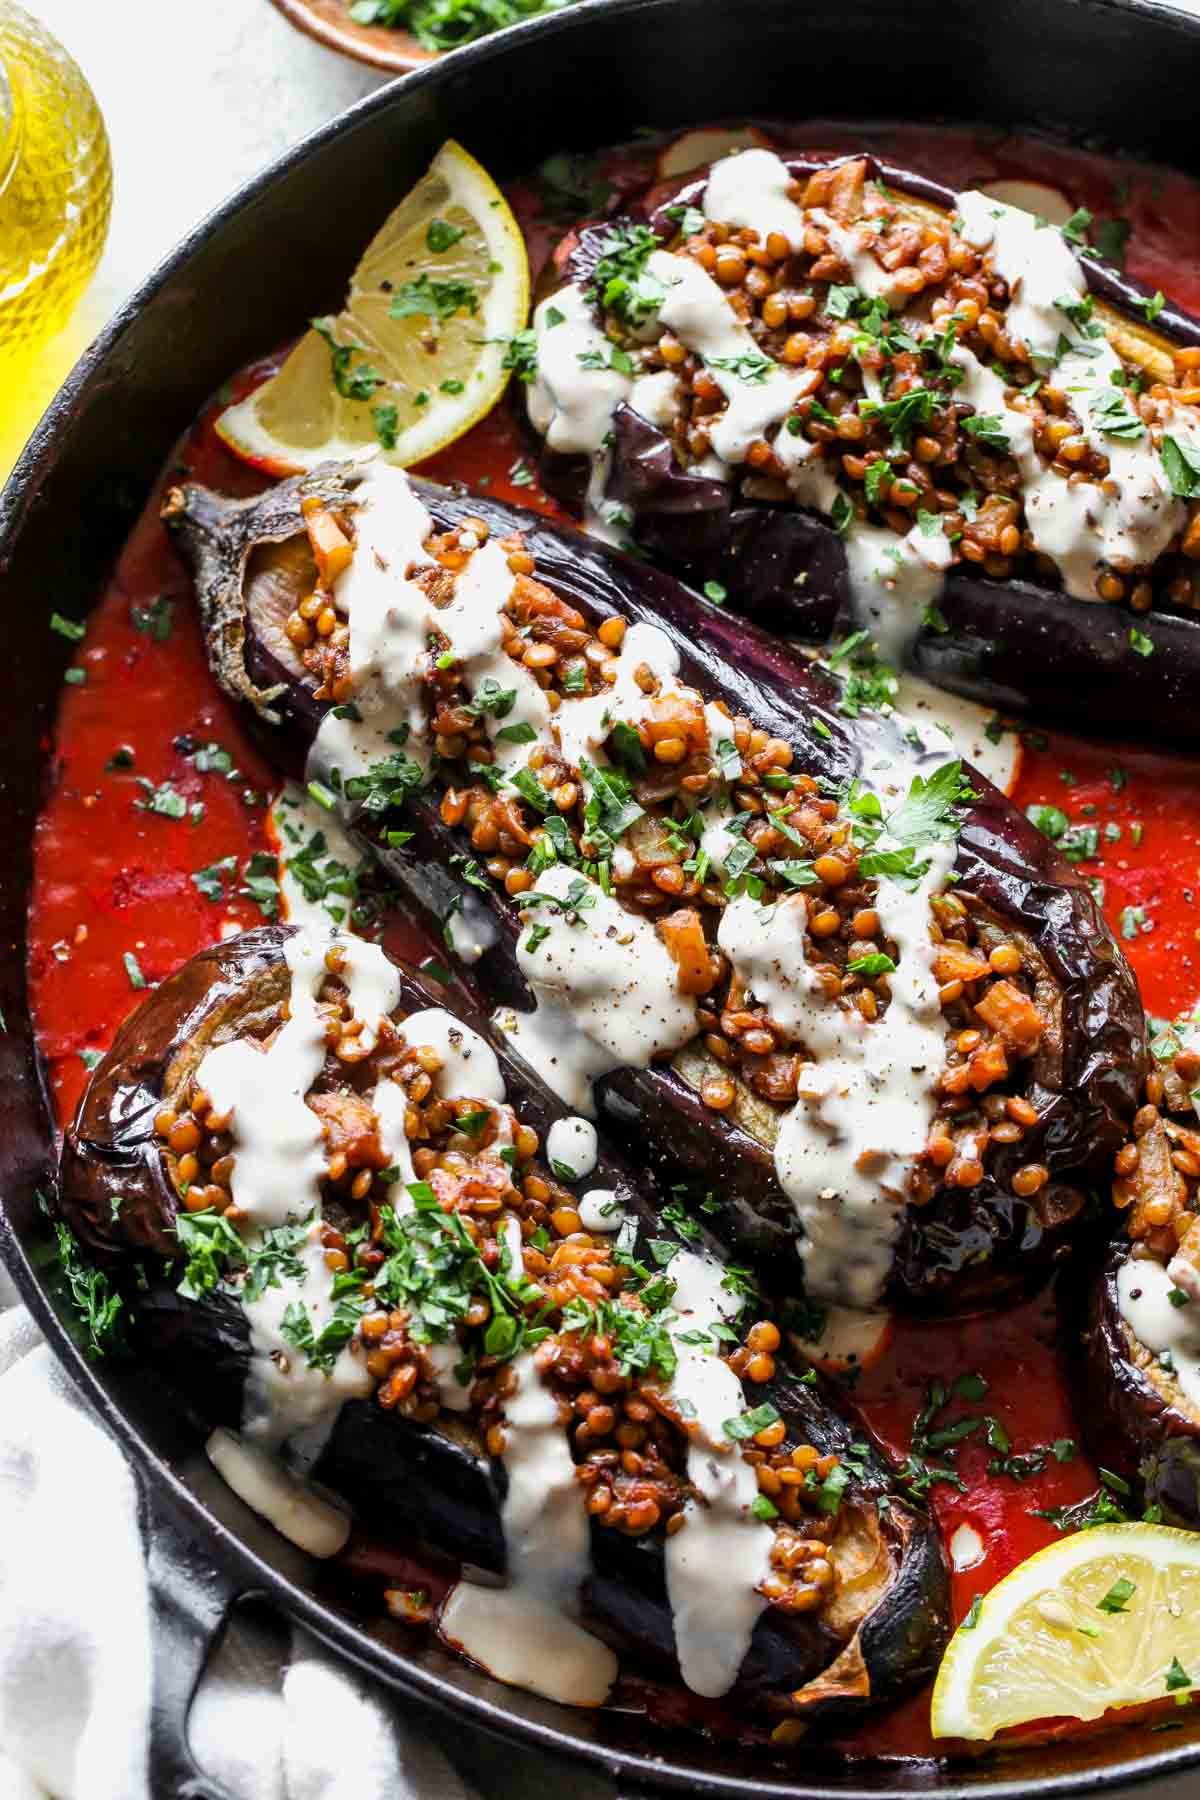 Stuffed eggplants being drizzled with tahini sauce and topped with parsley